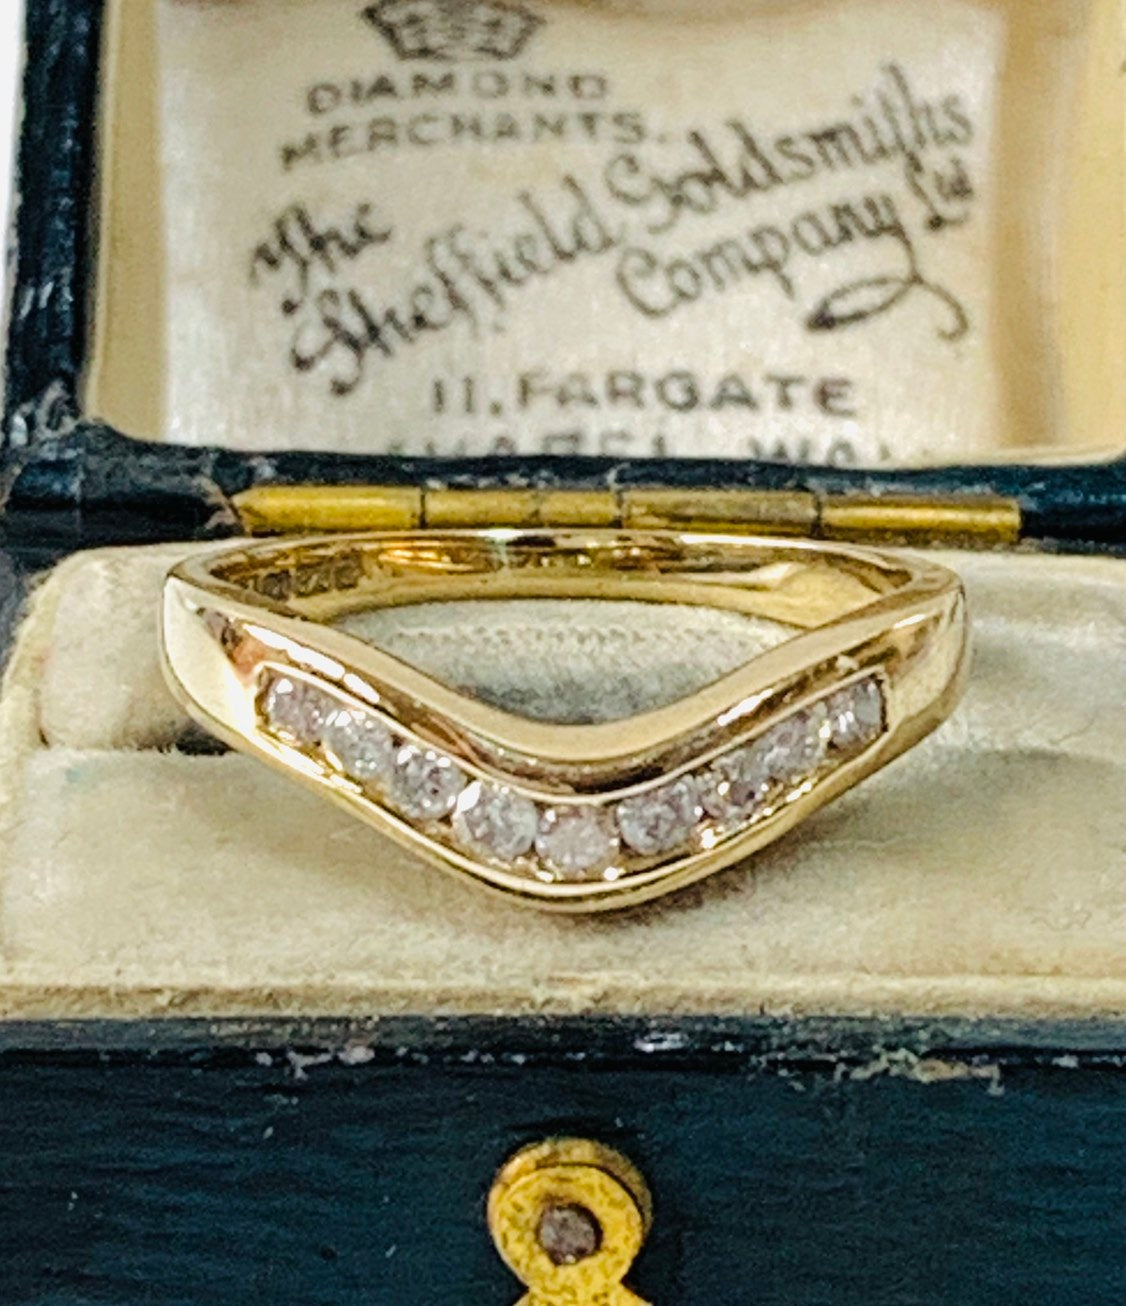 Superb Sparkling Vintage 9Ct Yellow Gold 0.25 Carat Diamond Throughout Latest Sparkling Wishbone Rings (Gallery 22 of 25)